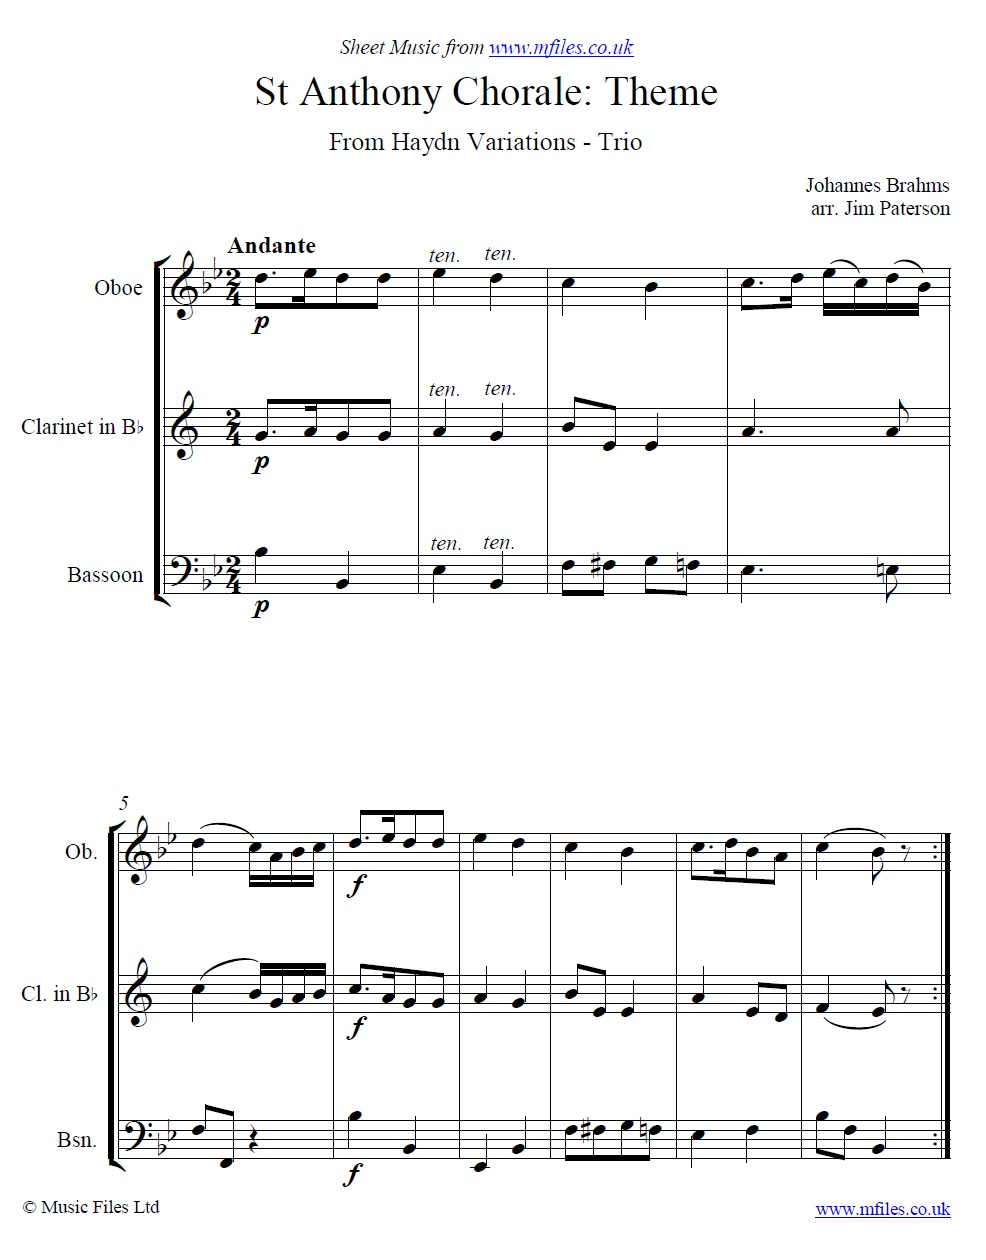 Brahms' St. Anthony Chorale Variations (Theme) arranged for Trio - sheet music 1st page